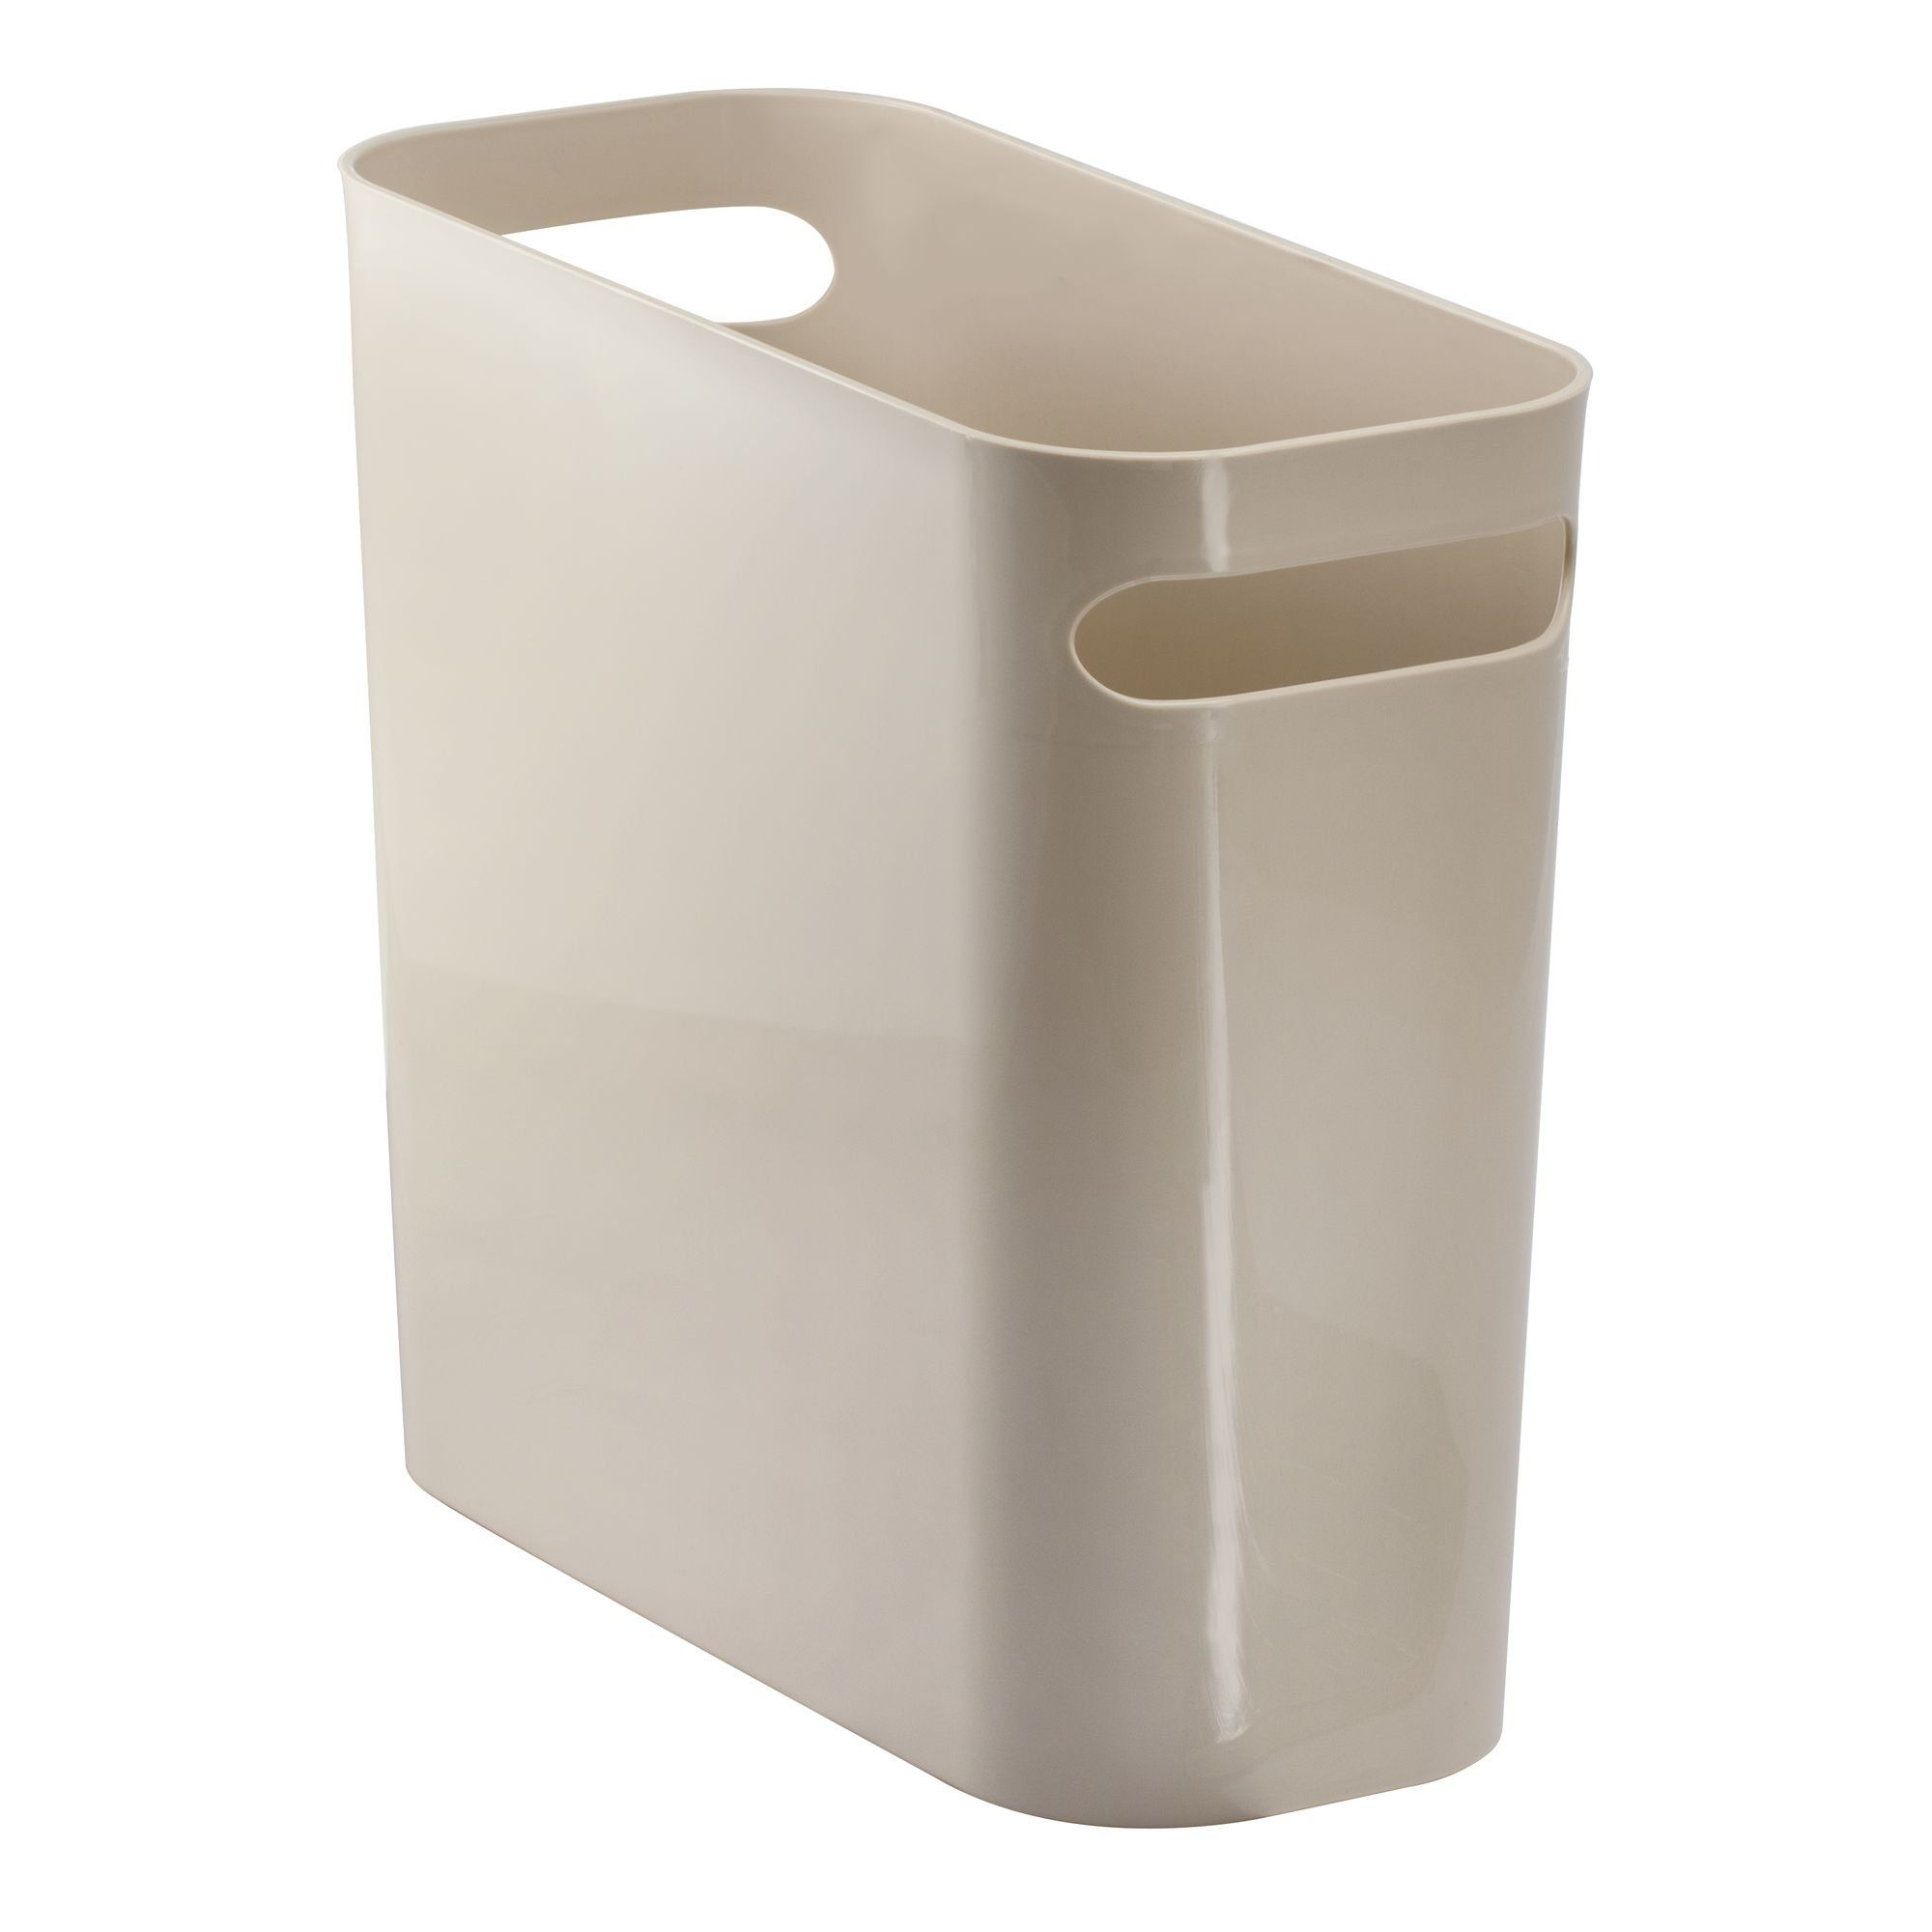 Mdesign Slim Rectangular Trash Can Wastebasket Garbage Container Bin With Handles For Bathrooms Kitchens Home Offices Dor Trash Can